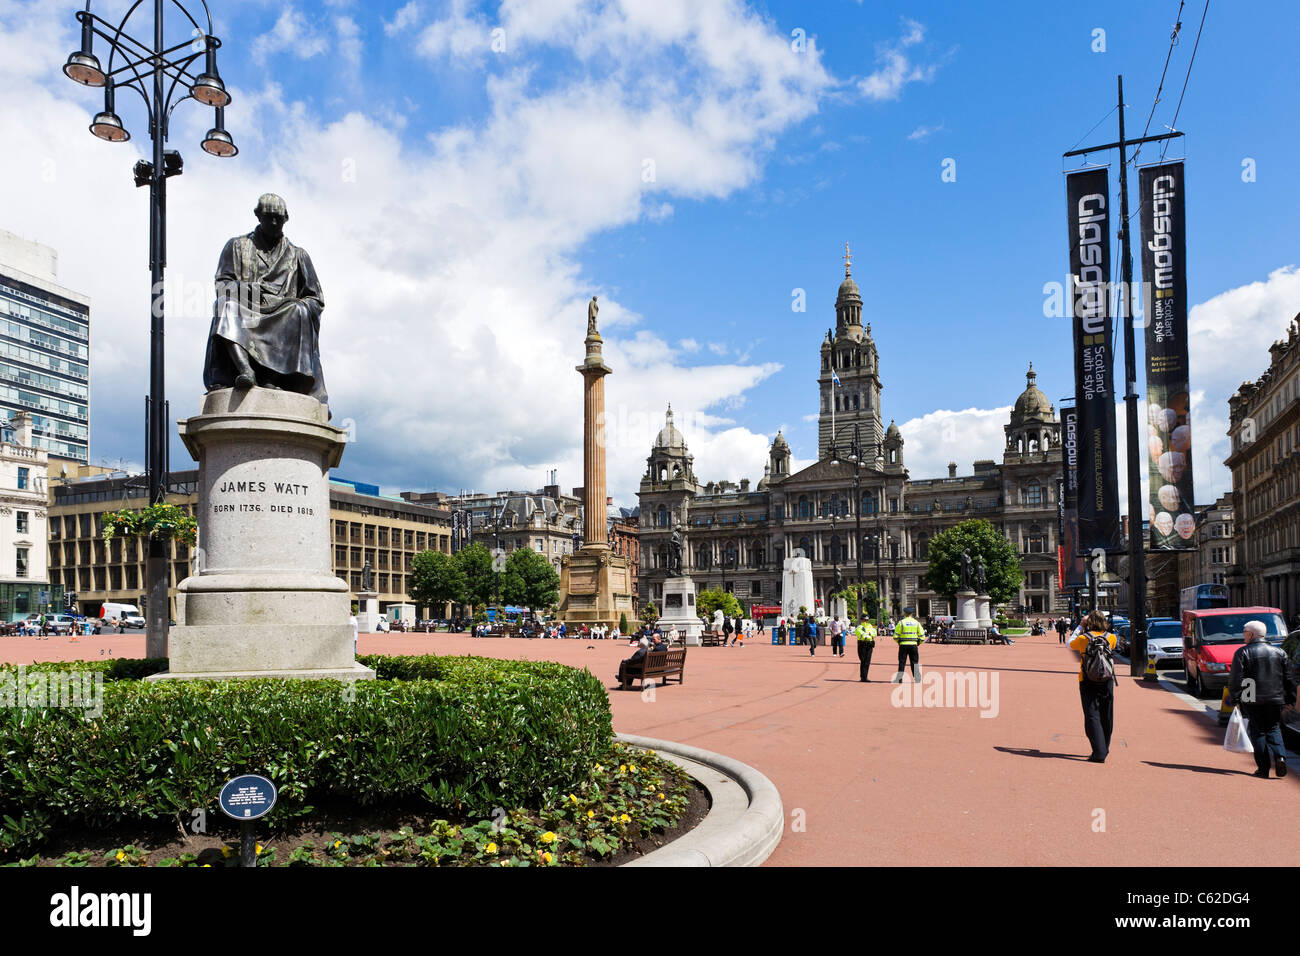 George Square in the city centre with City Chambers in background and statue of James Watt in foreground, Glasgow, - Stock Image